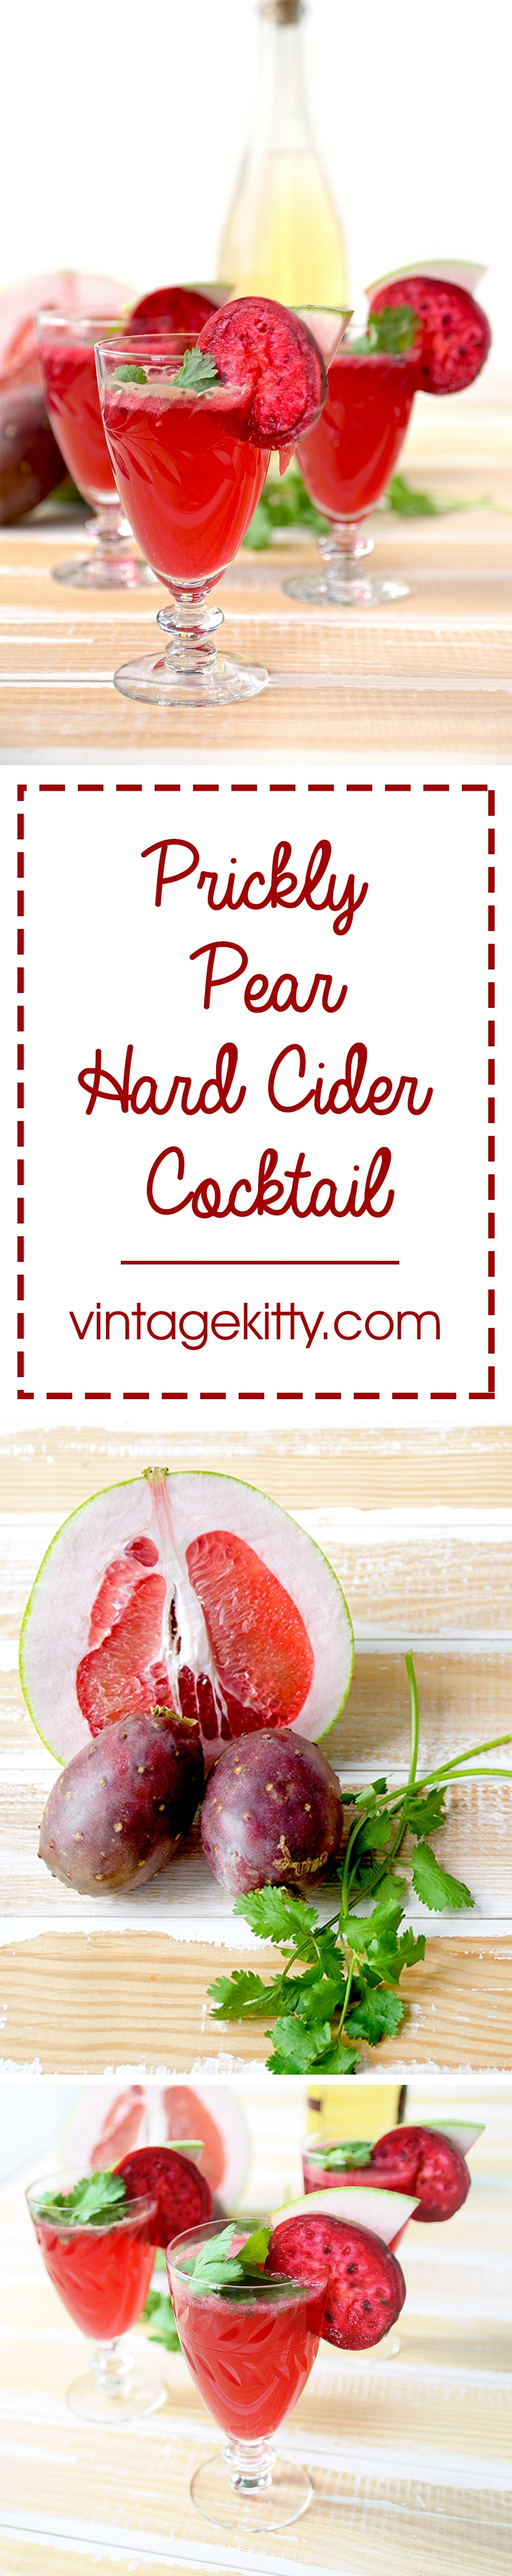 Refreshing, fruity and unique, this Prickly Pear Hard Cider Cocktail with Cilantro and Pomelo tastes as good as it looks. | vintagekitty.com